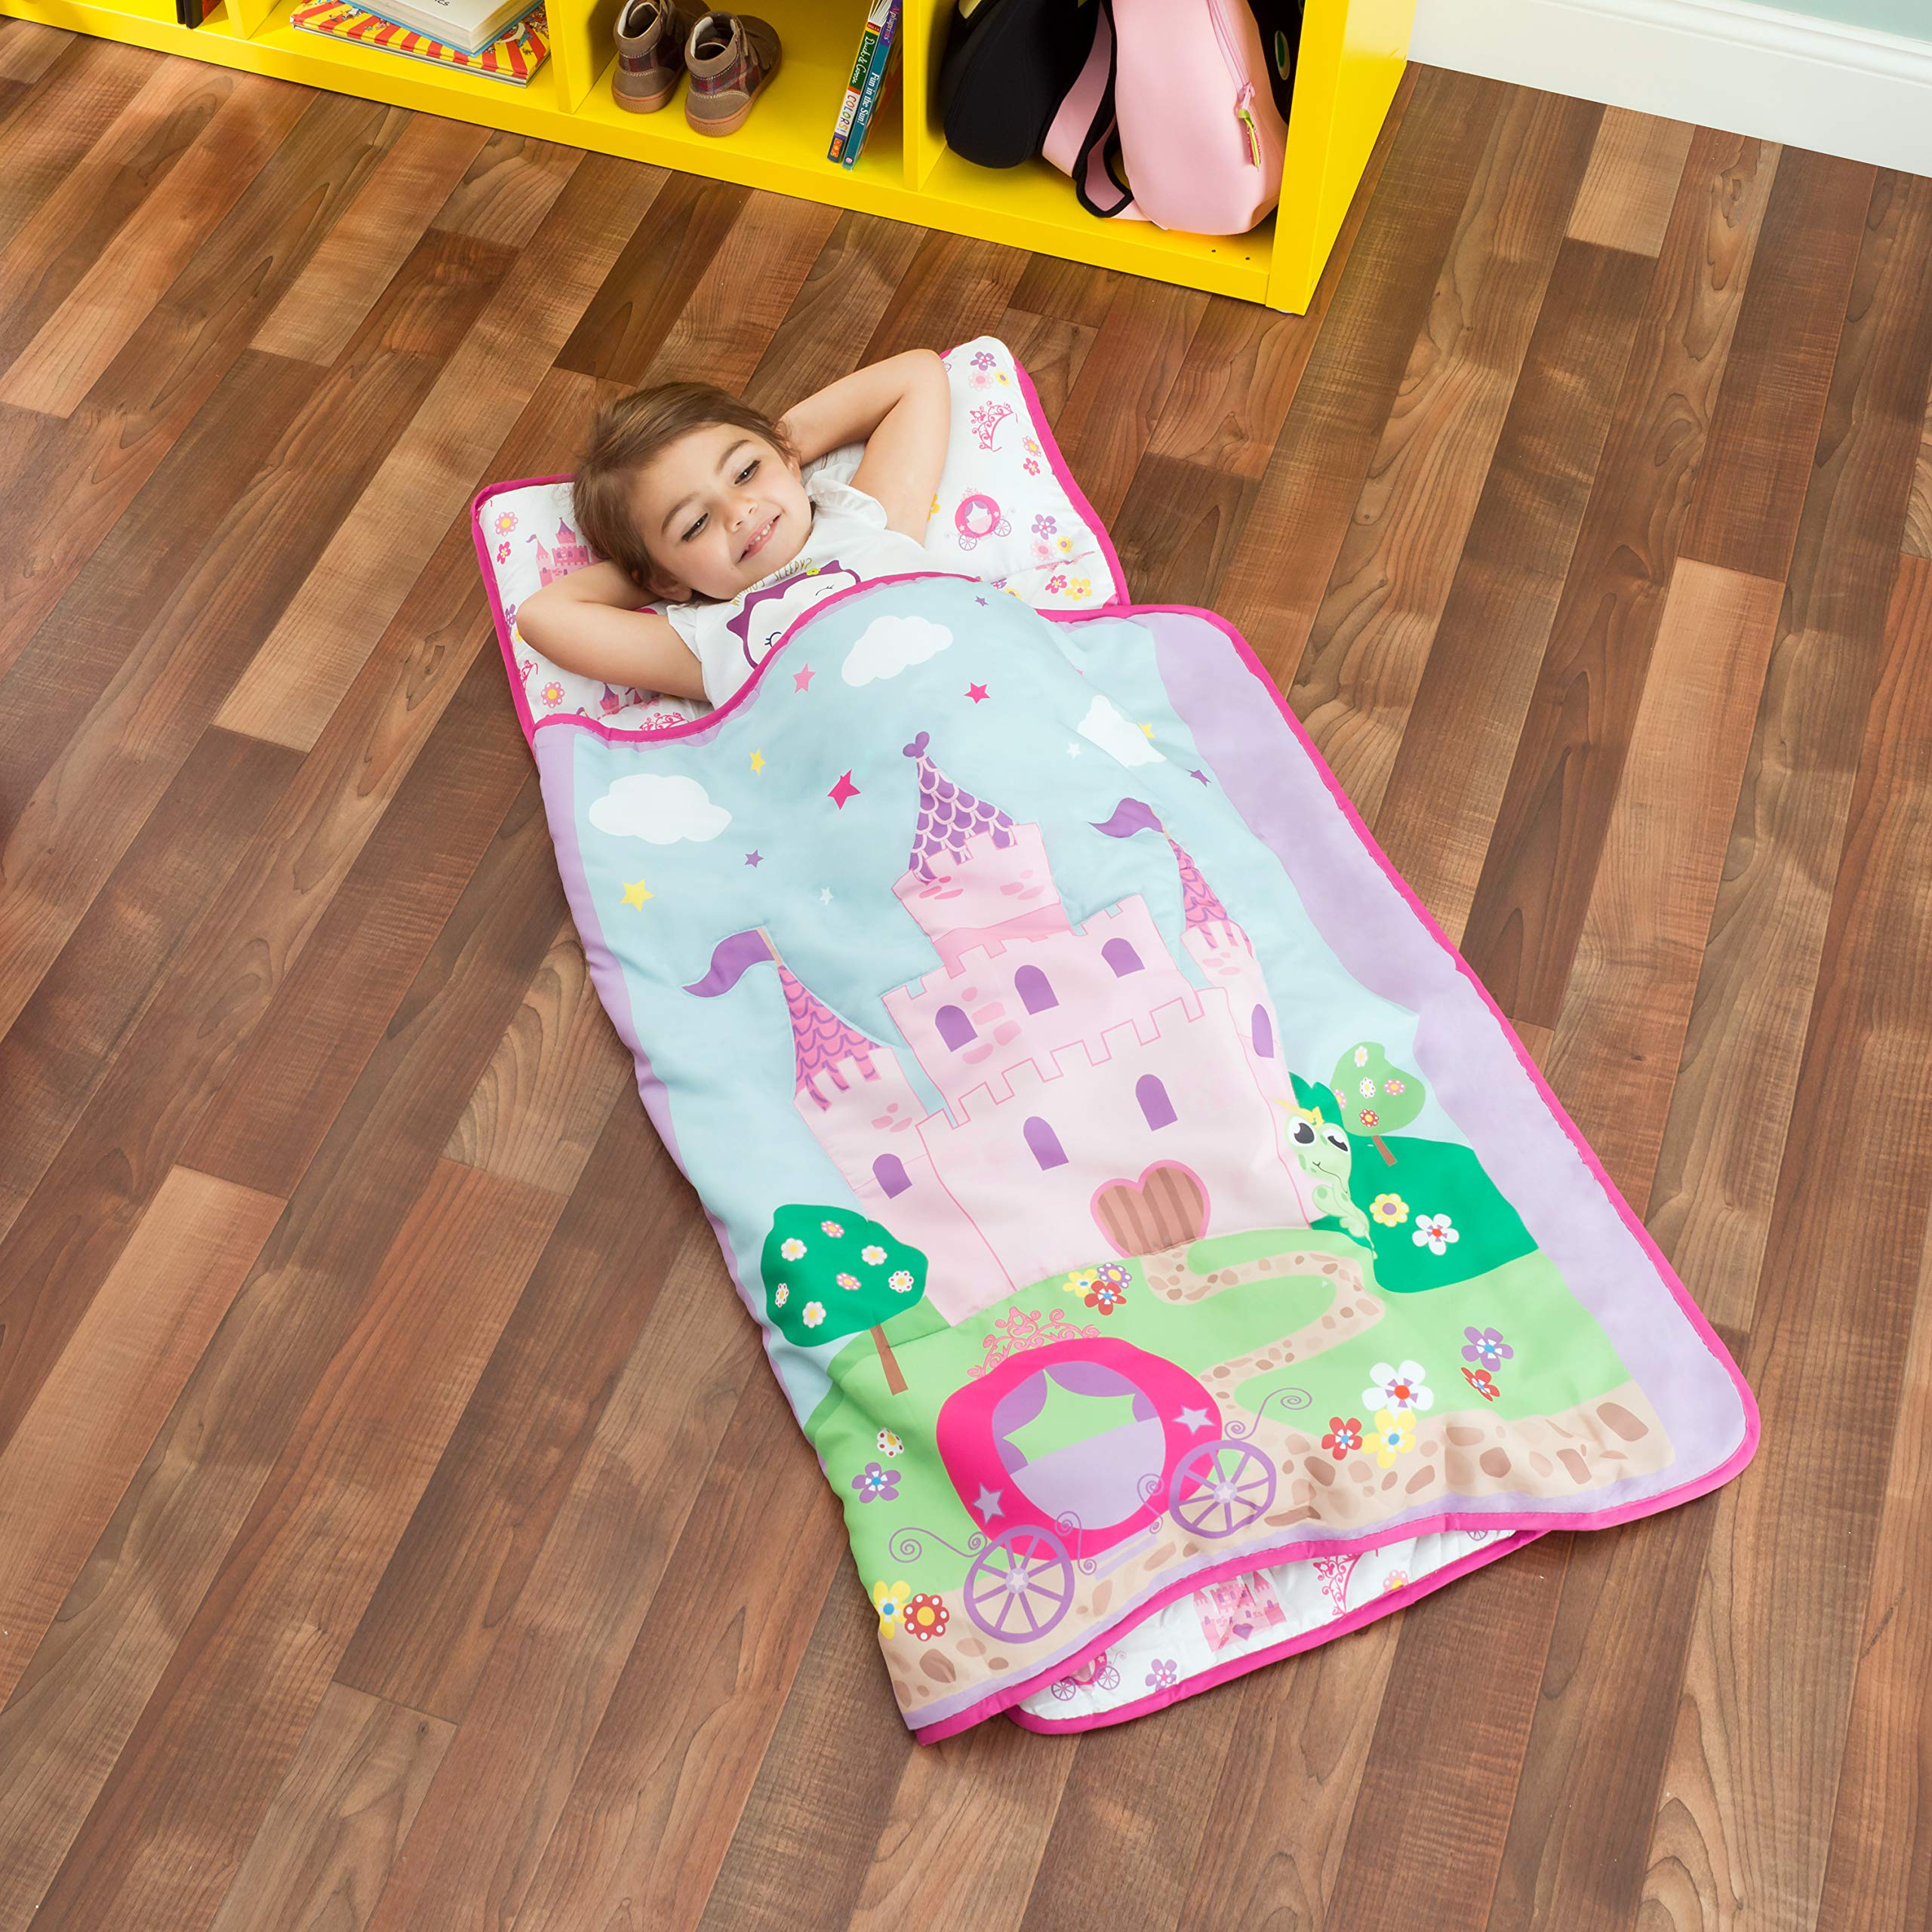 Everyday Kids Toddler Nap Mat with Removable Pillow -Princess Storyland- Carry Handle with Fastening Straps Closure, Rollup Design, Soft Microfiber for Preschool, Daycare, Sleeping Bag -Ages 2-4 years by EVERYDAY KIDS